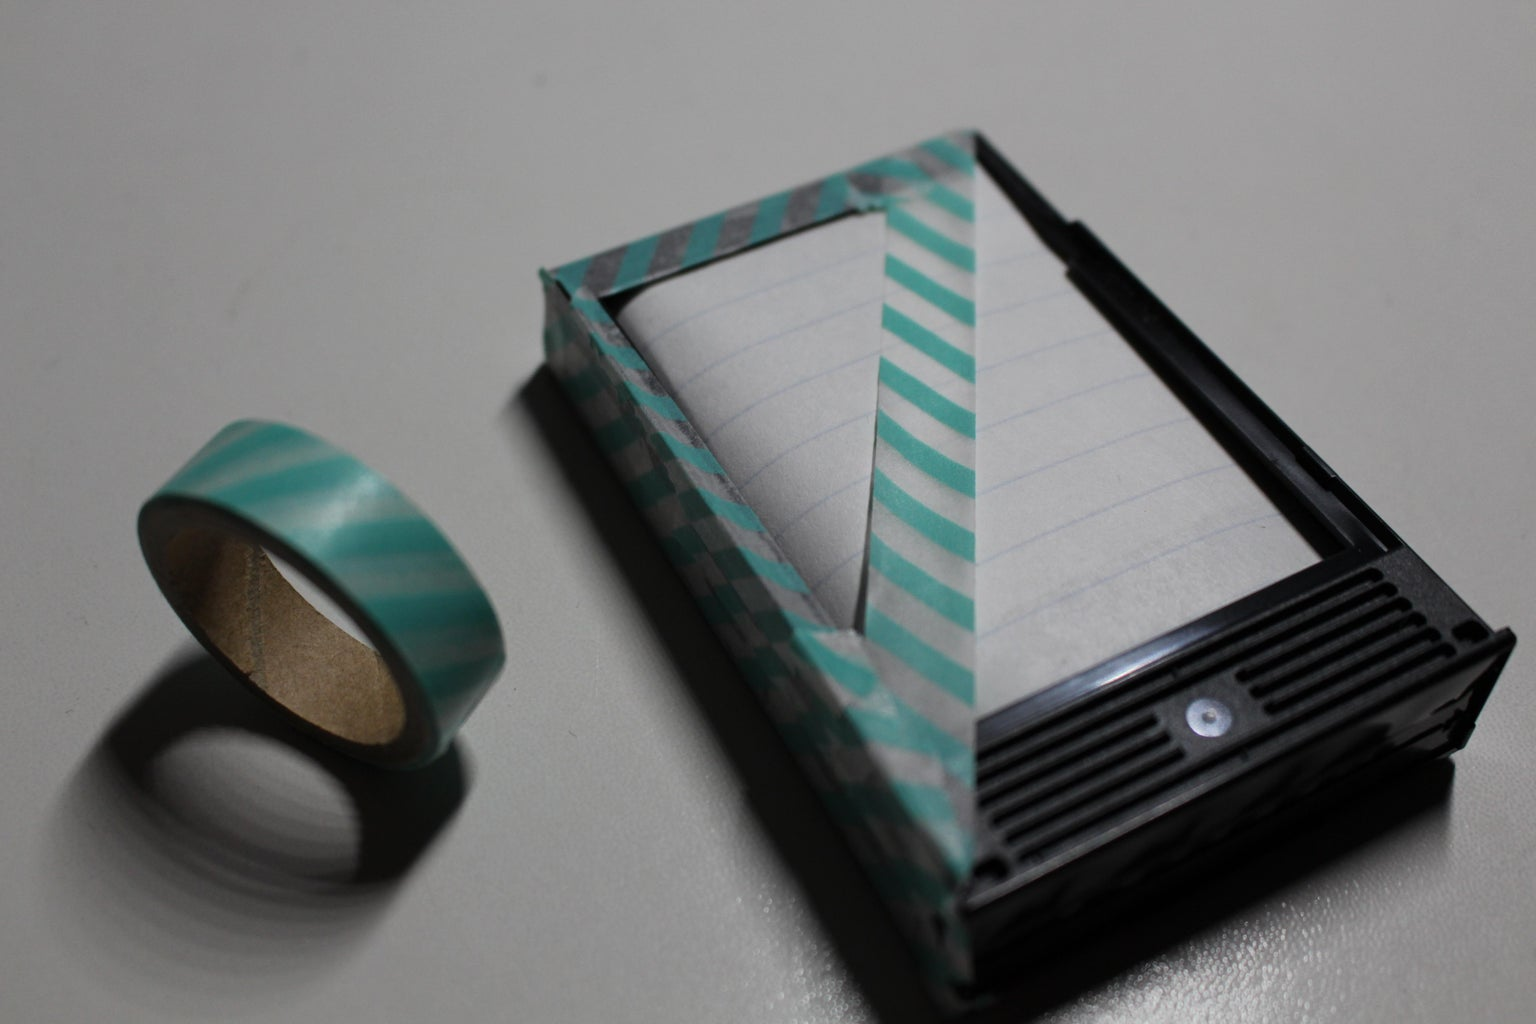 Tape Off Your Empty Cartridge